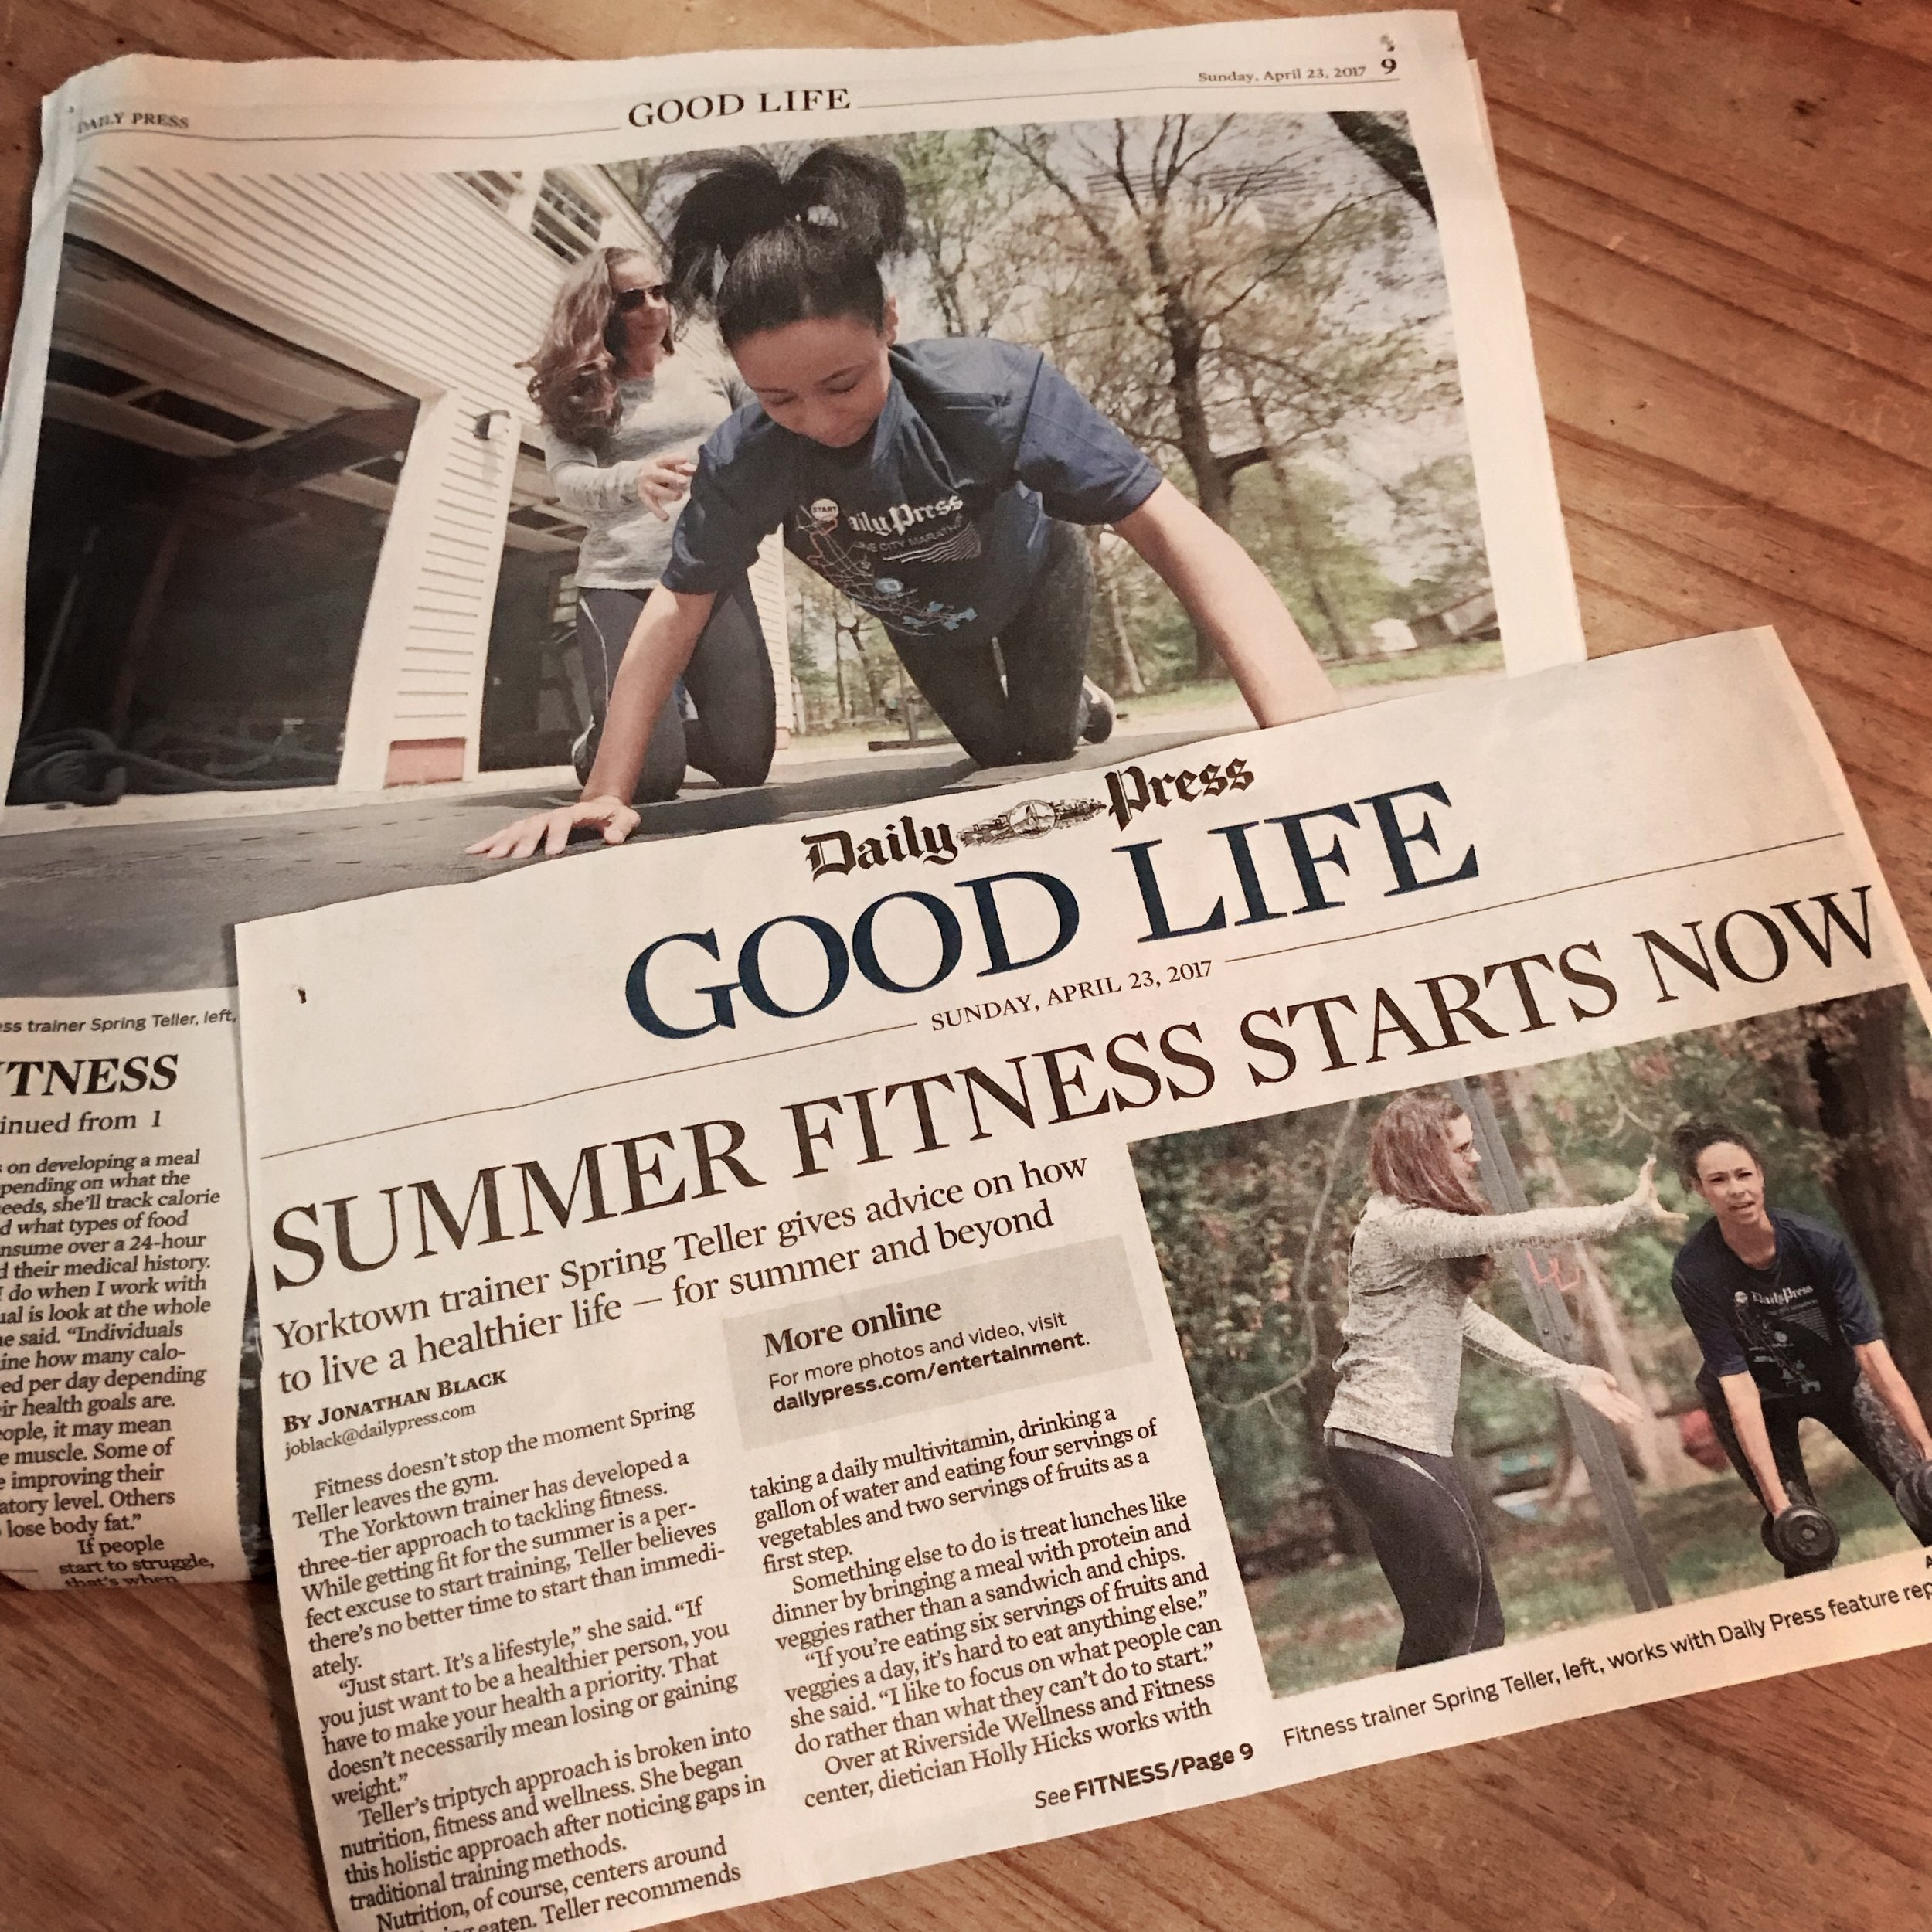 The Daily Press featured Spring's summer shape up tips. -